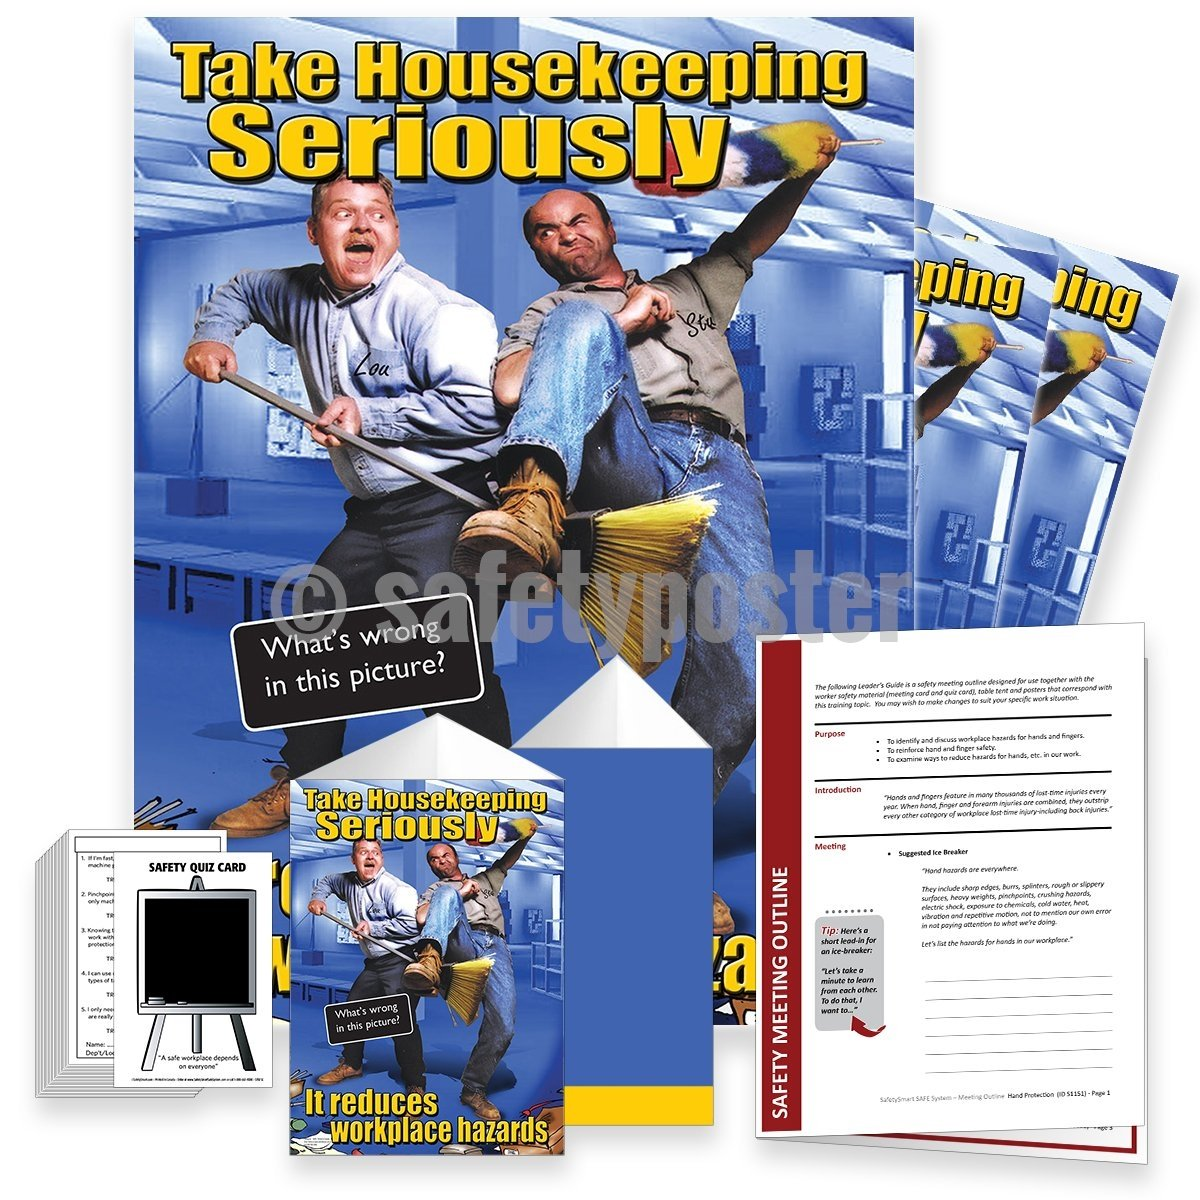 Safety Meeting Kit - Take Housekeeping Seriously Kits